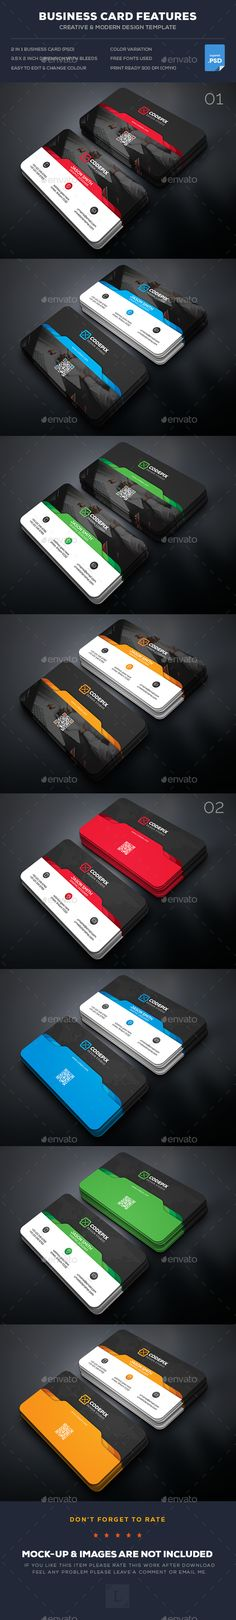 Business Card Templates PSD Bundle. Download here: https://graphicriver.net/item/business-card-bundle/17402627?ref=ksioks